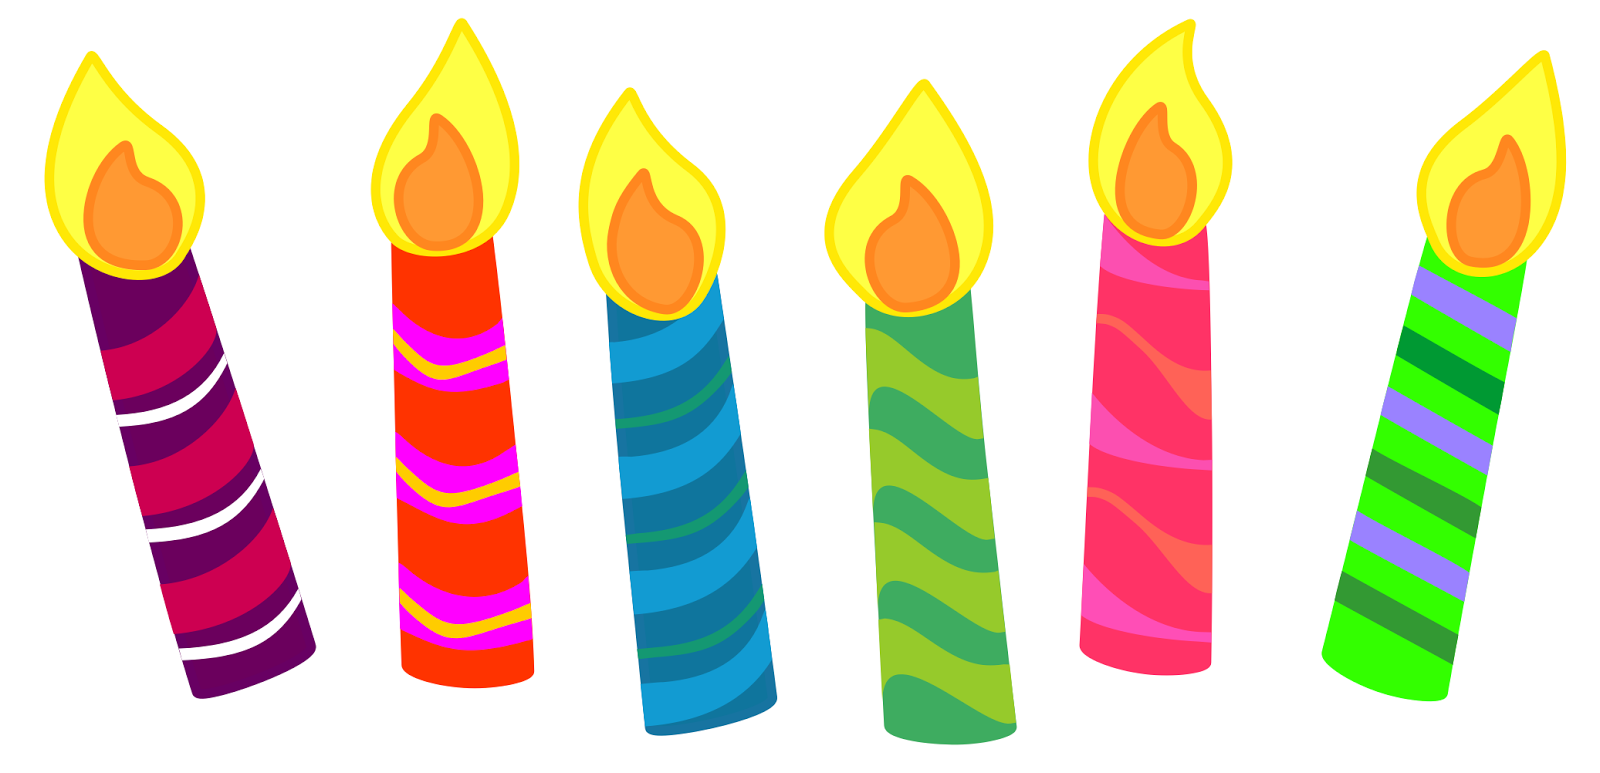 Candles Clipart - Free Large Images-candles clipart - Free Large Images-6